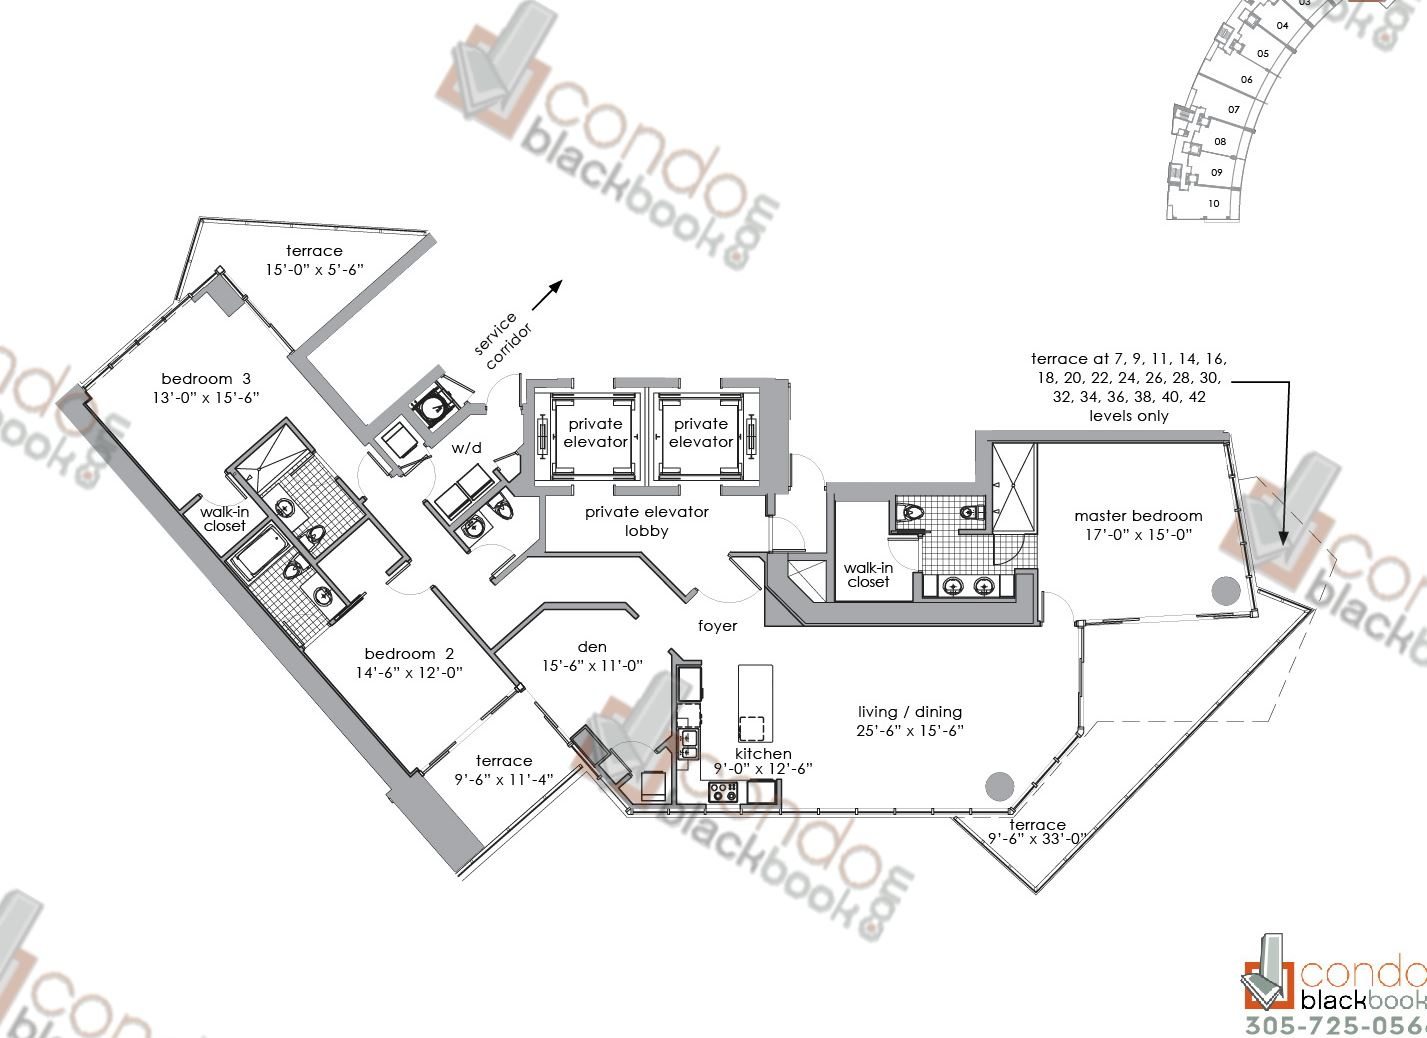 Floor plan for Paramount Bay Edgewater Miami, model 02, line 02, 3+Den/3,5 bedrooms, 2,353 sq ft